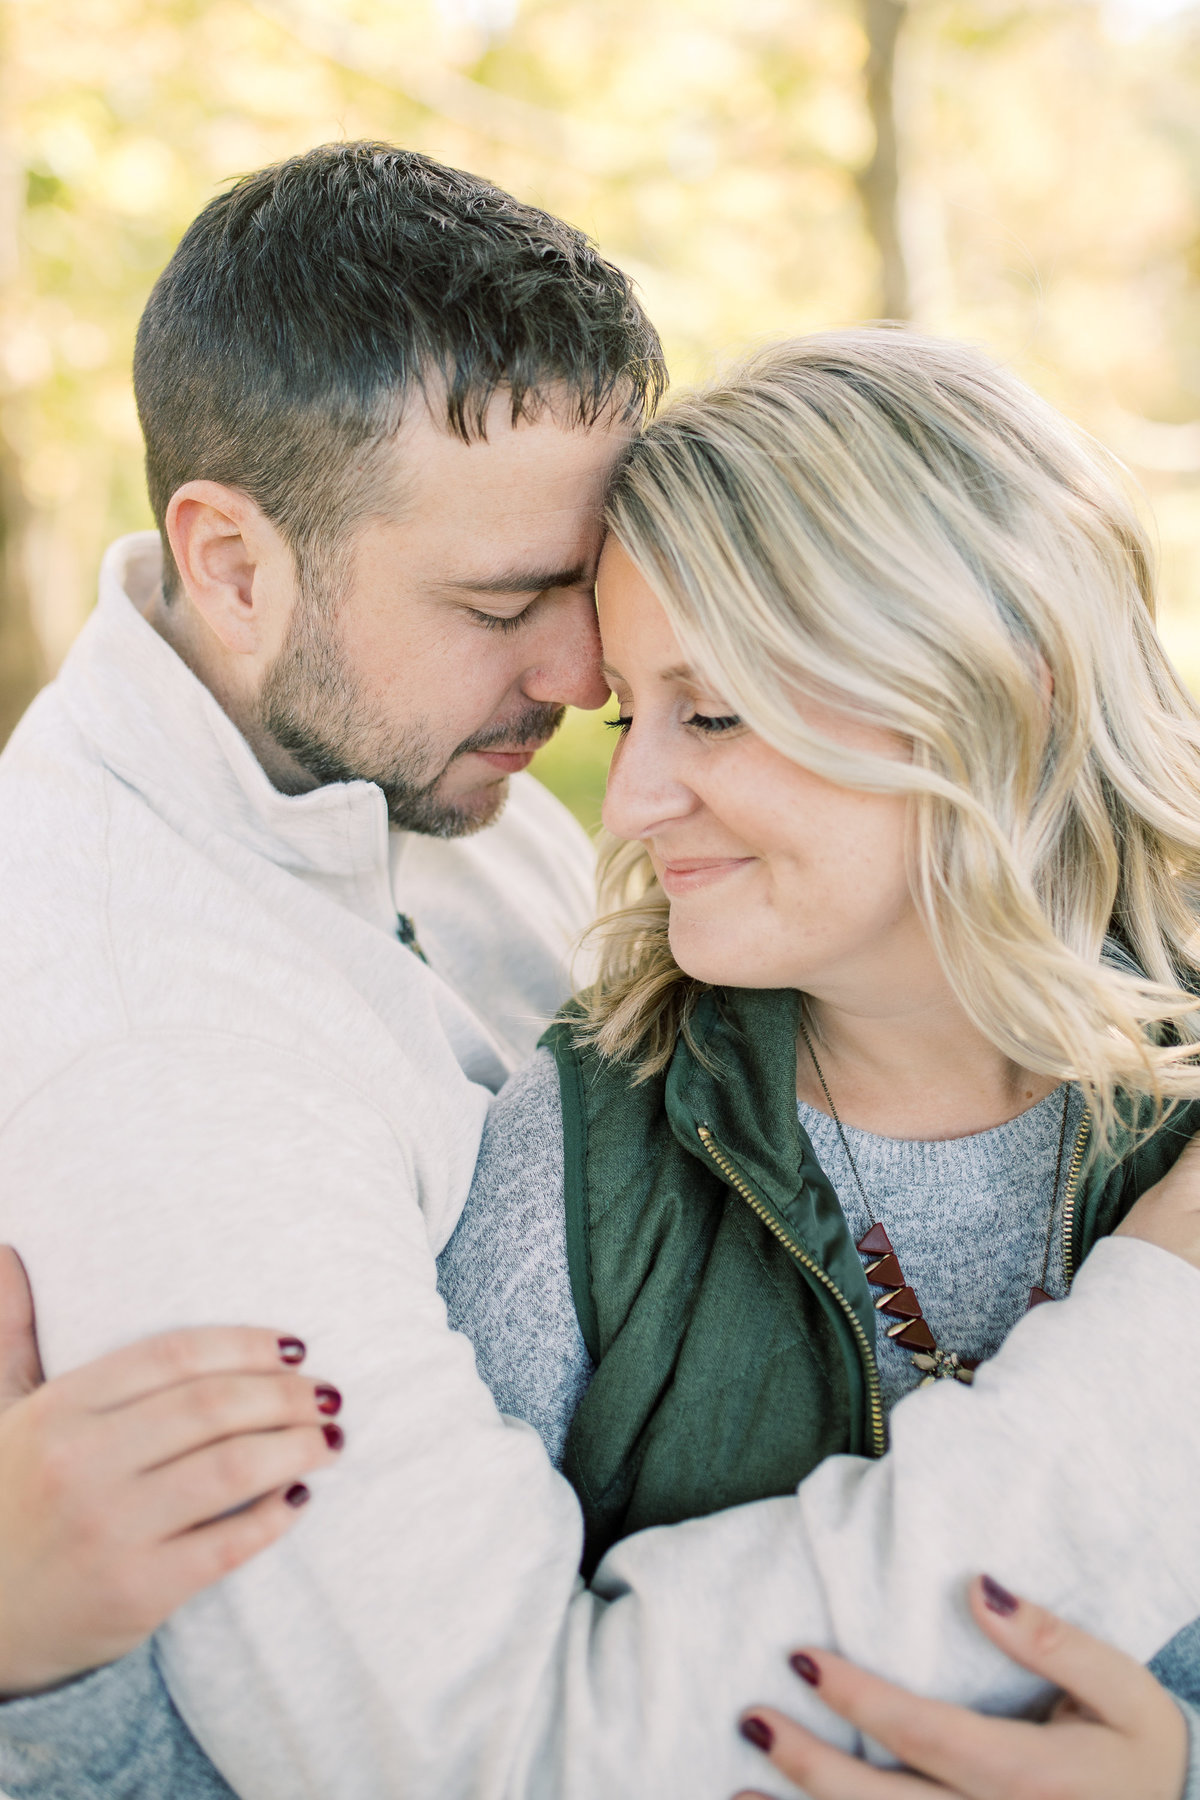 A couple embraces with their eyes closed during their engagement session